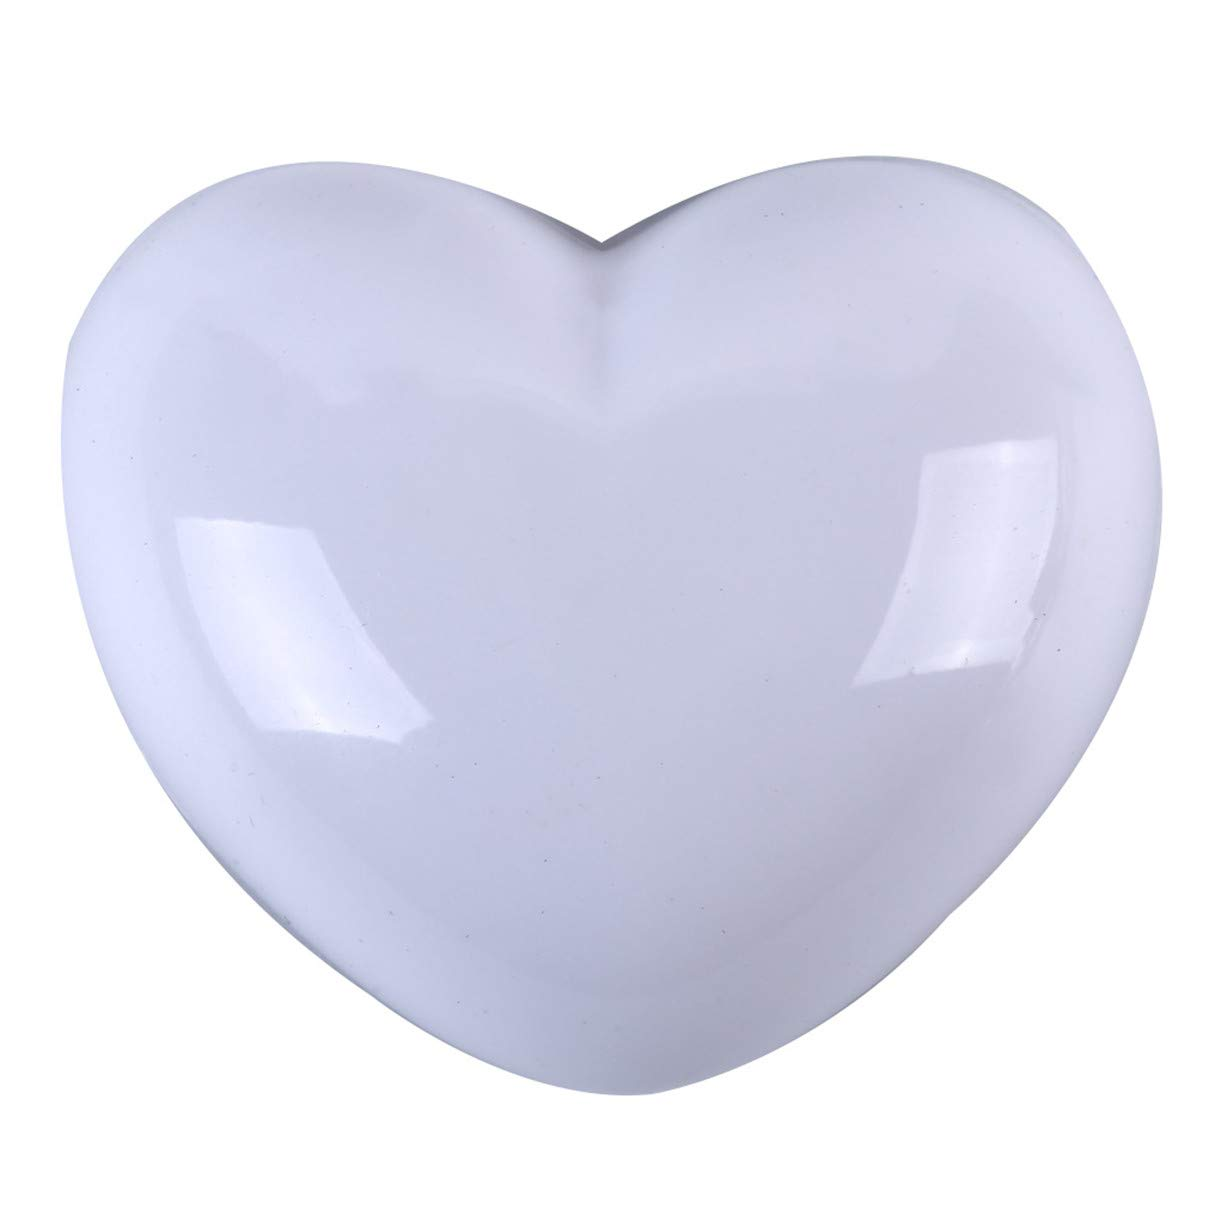 Weiy Wall Protection Door Stopper Cute Heart Shape Wall Buffer Door Damper, Wall Protection Suitable for Floor mounting